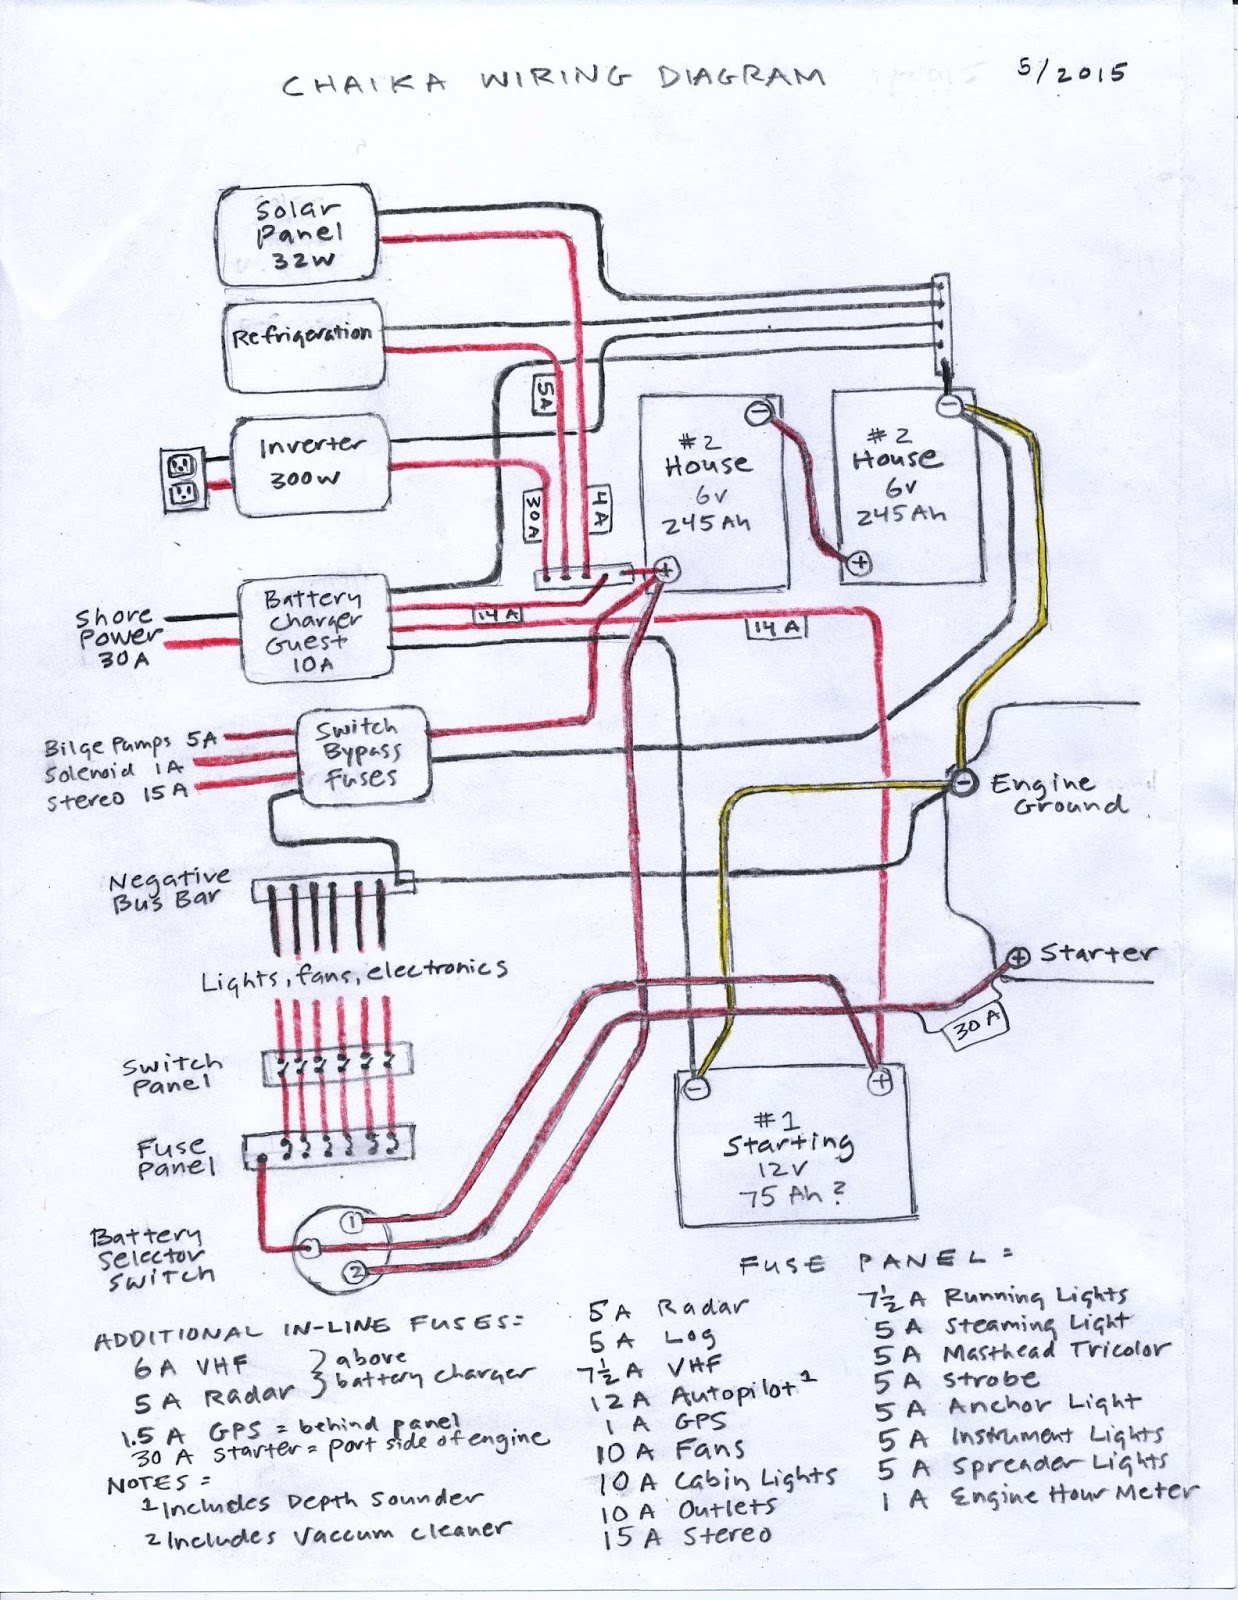 small boat trailer wiring diagram 6 pin round connector projects making life aboard easier roadmaps